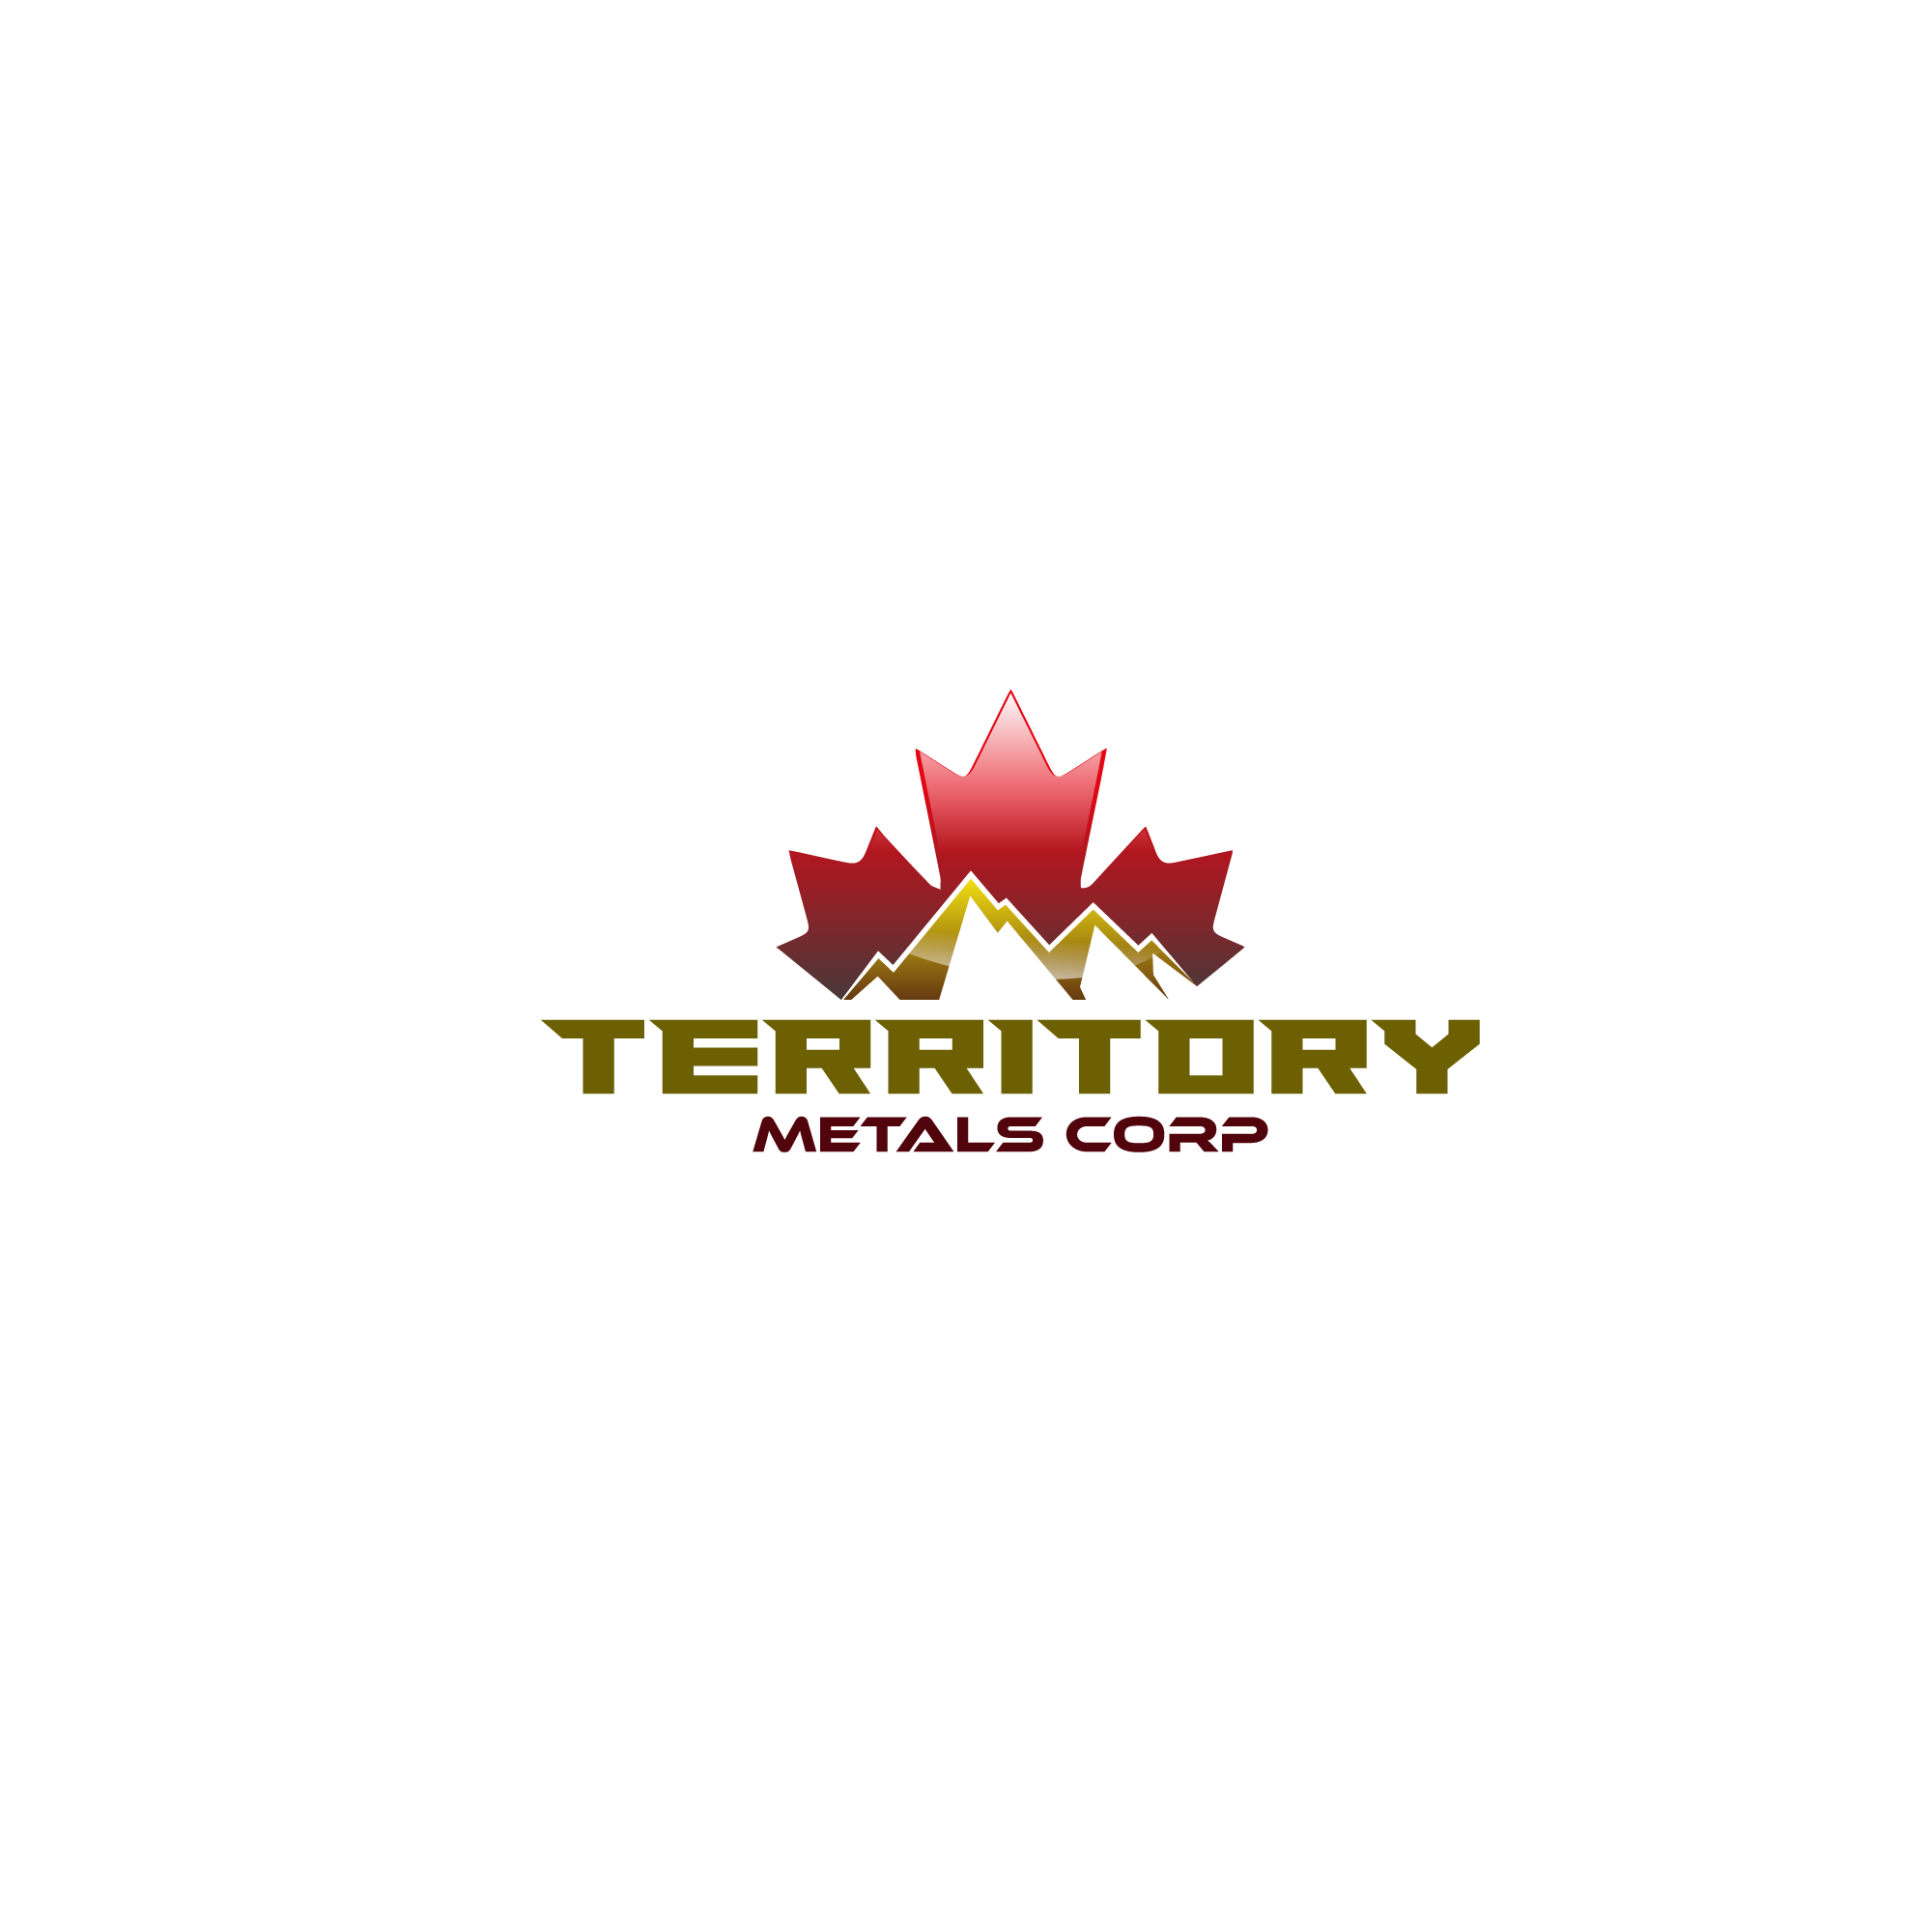 Logo Design by Runz - Entry No. 210 in the Logo Design Contest Unique Logo Design Wanted for Territory Metals Corp..